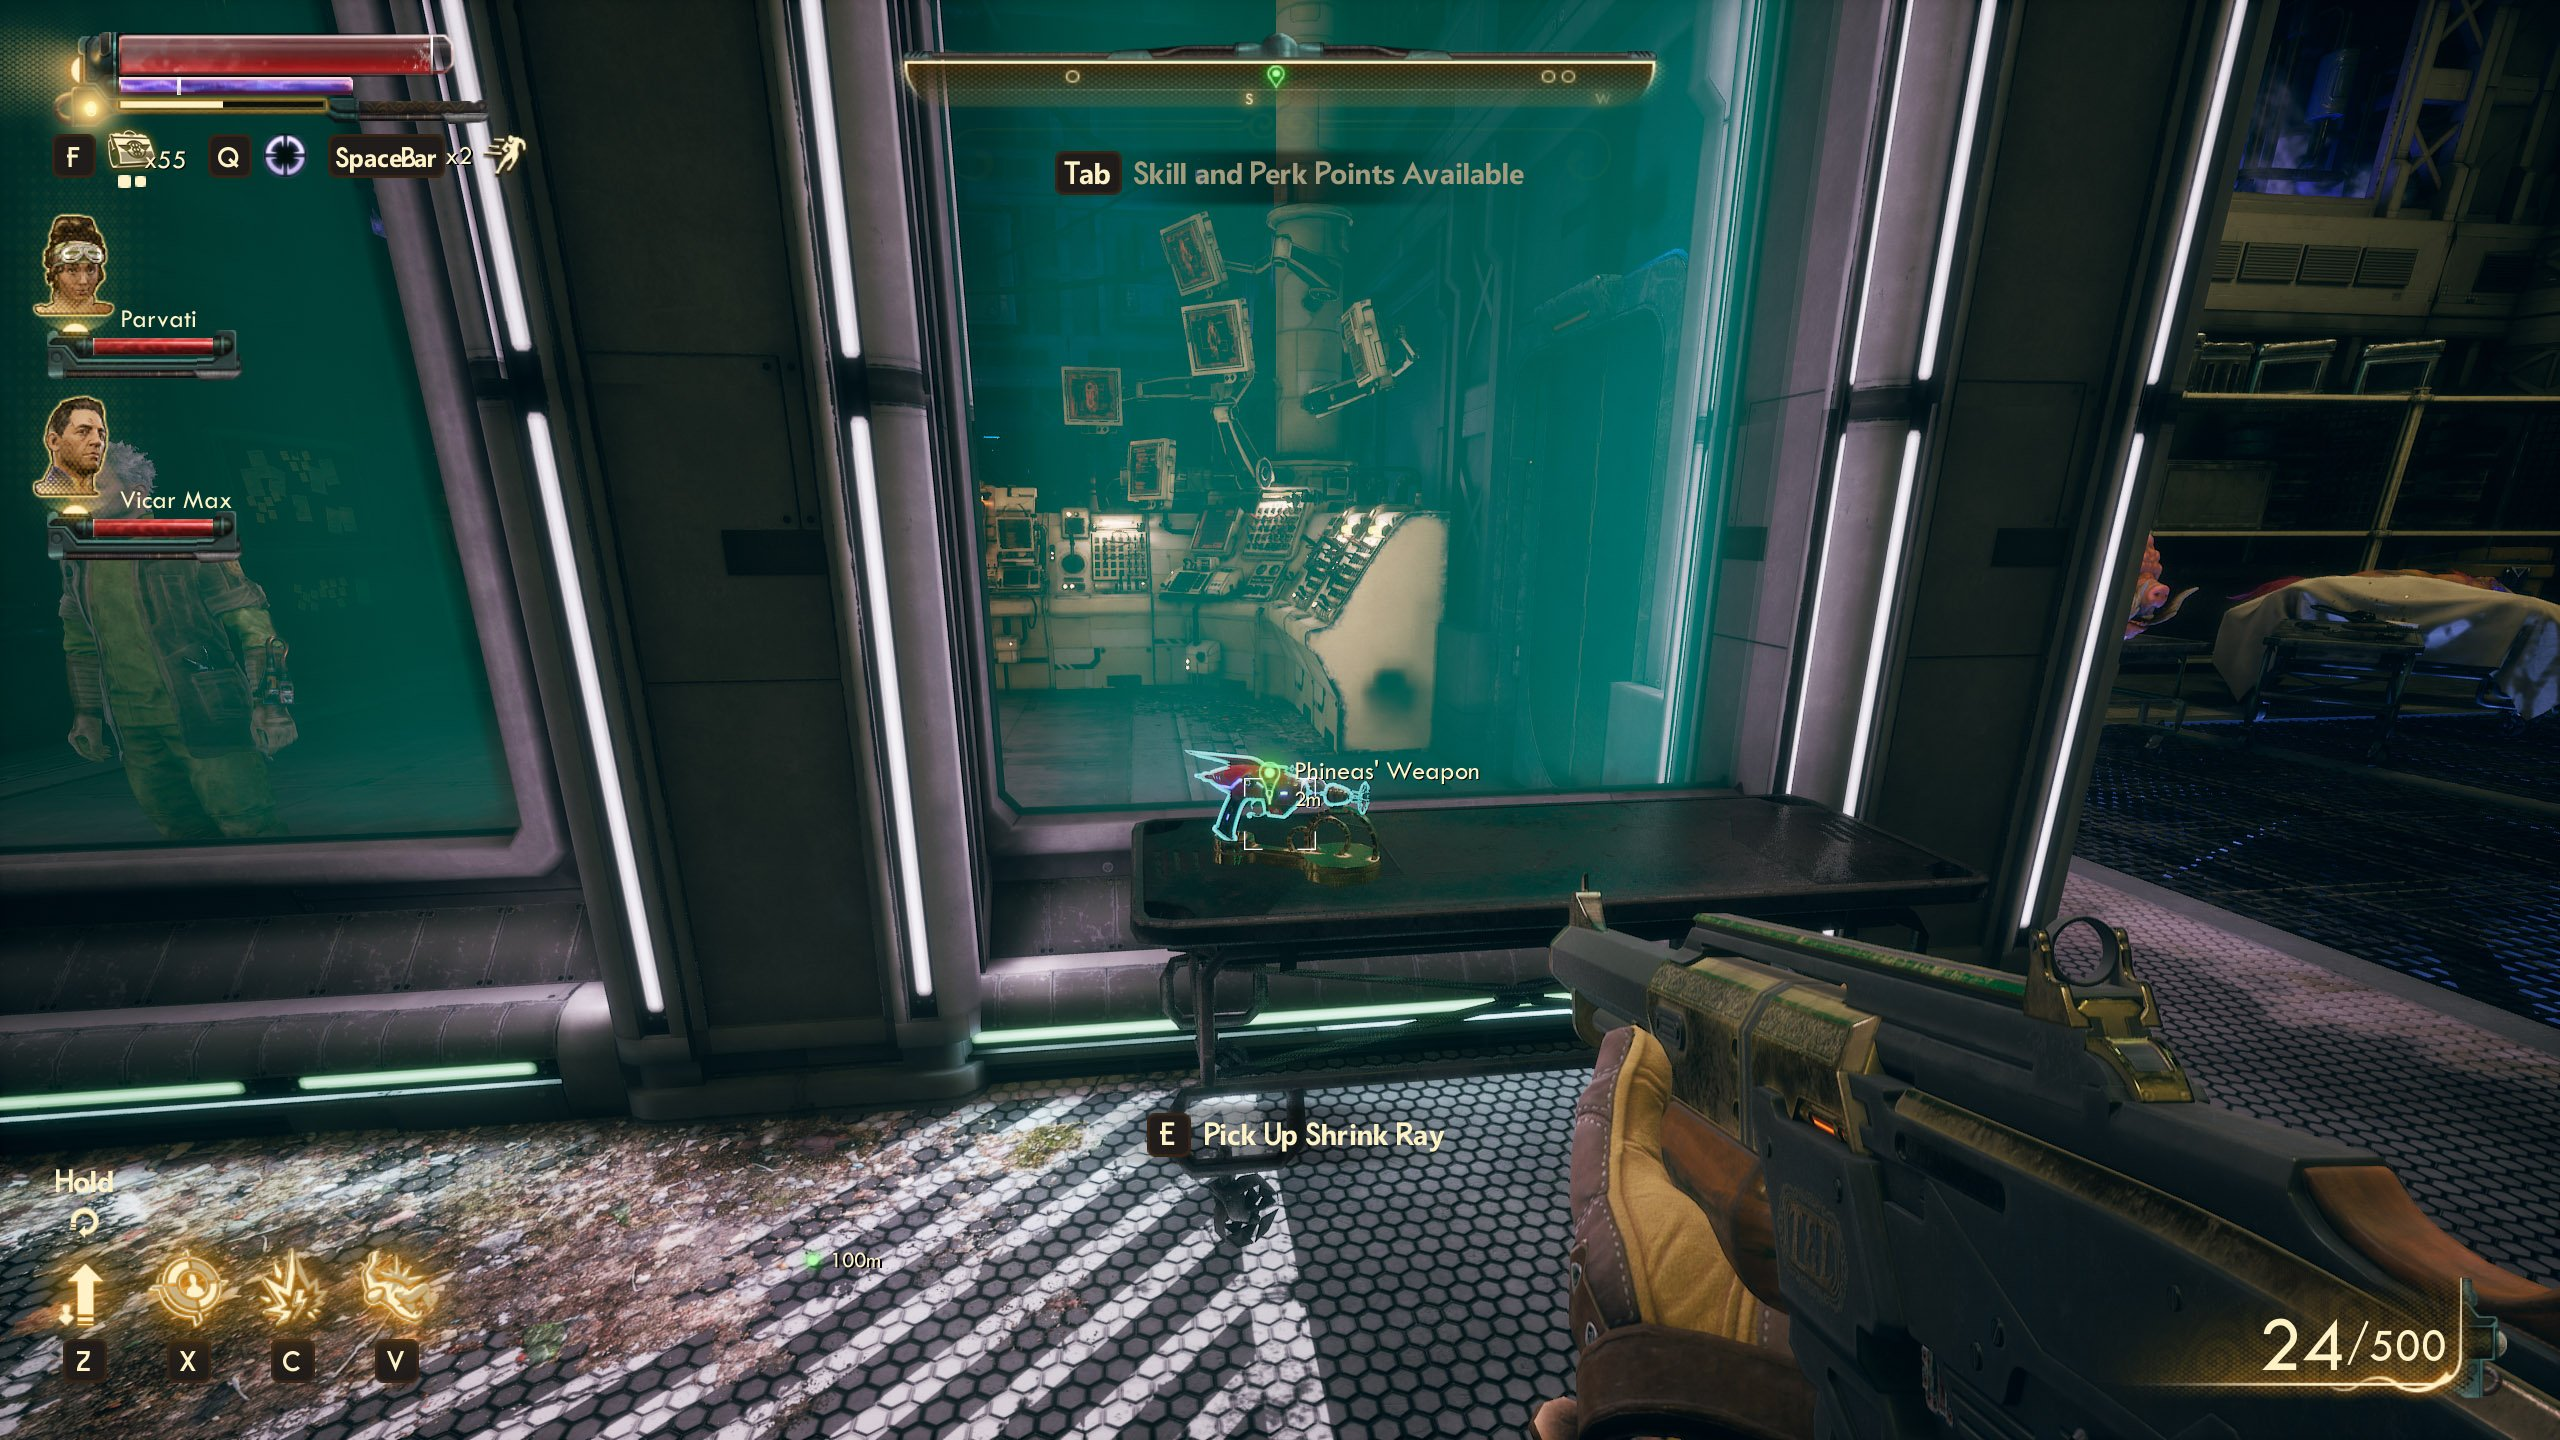 Weapons from the Void The Outer Worlds